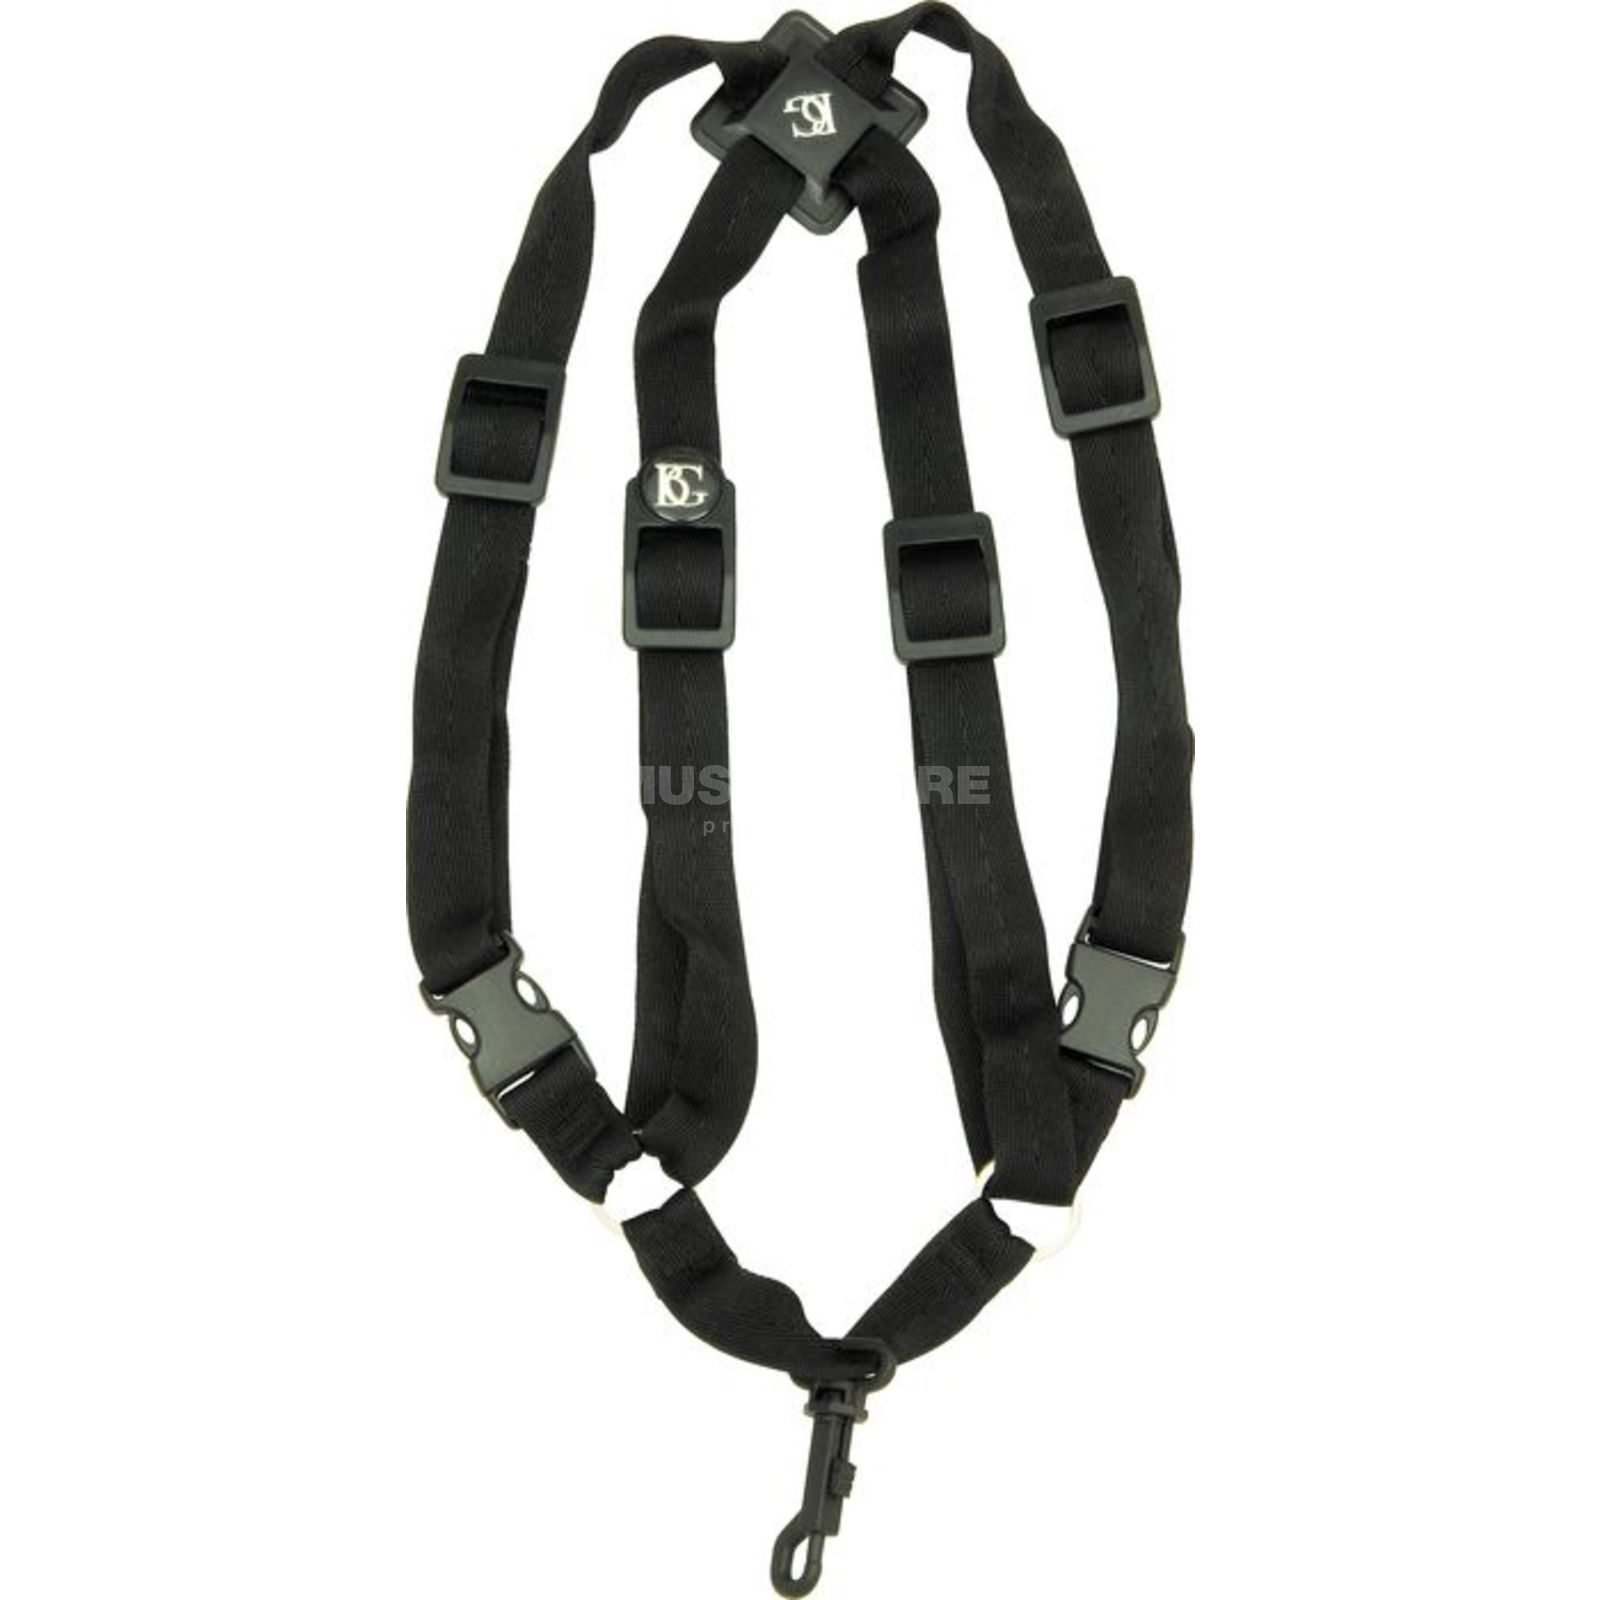 BG S42 SH Carrying Strap Children S for Saxophone Image du produit